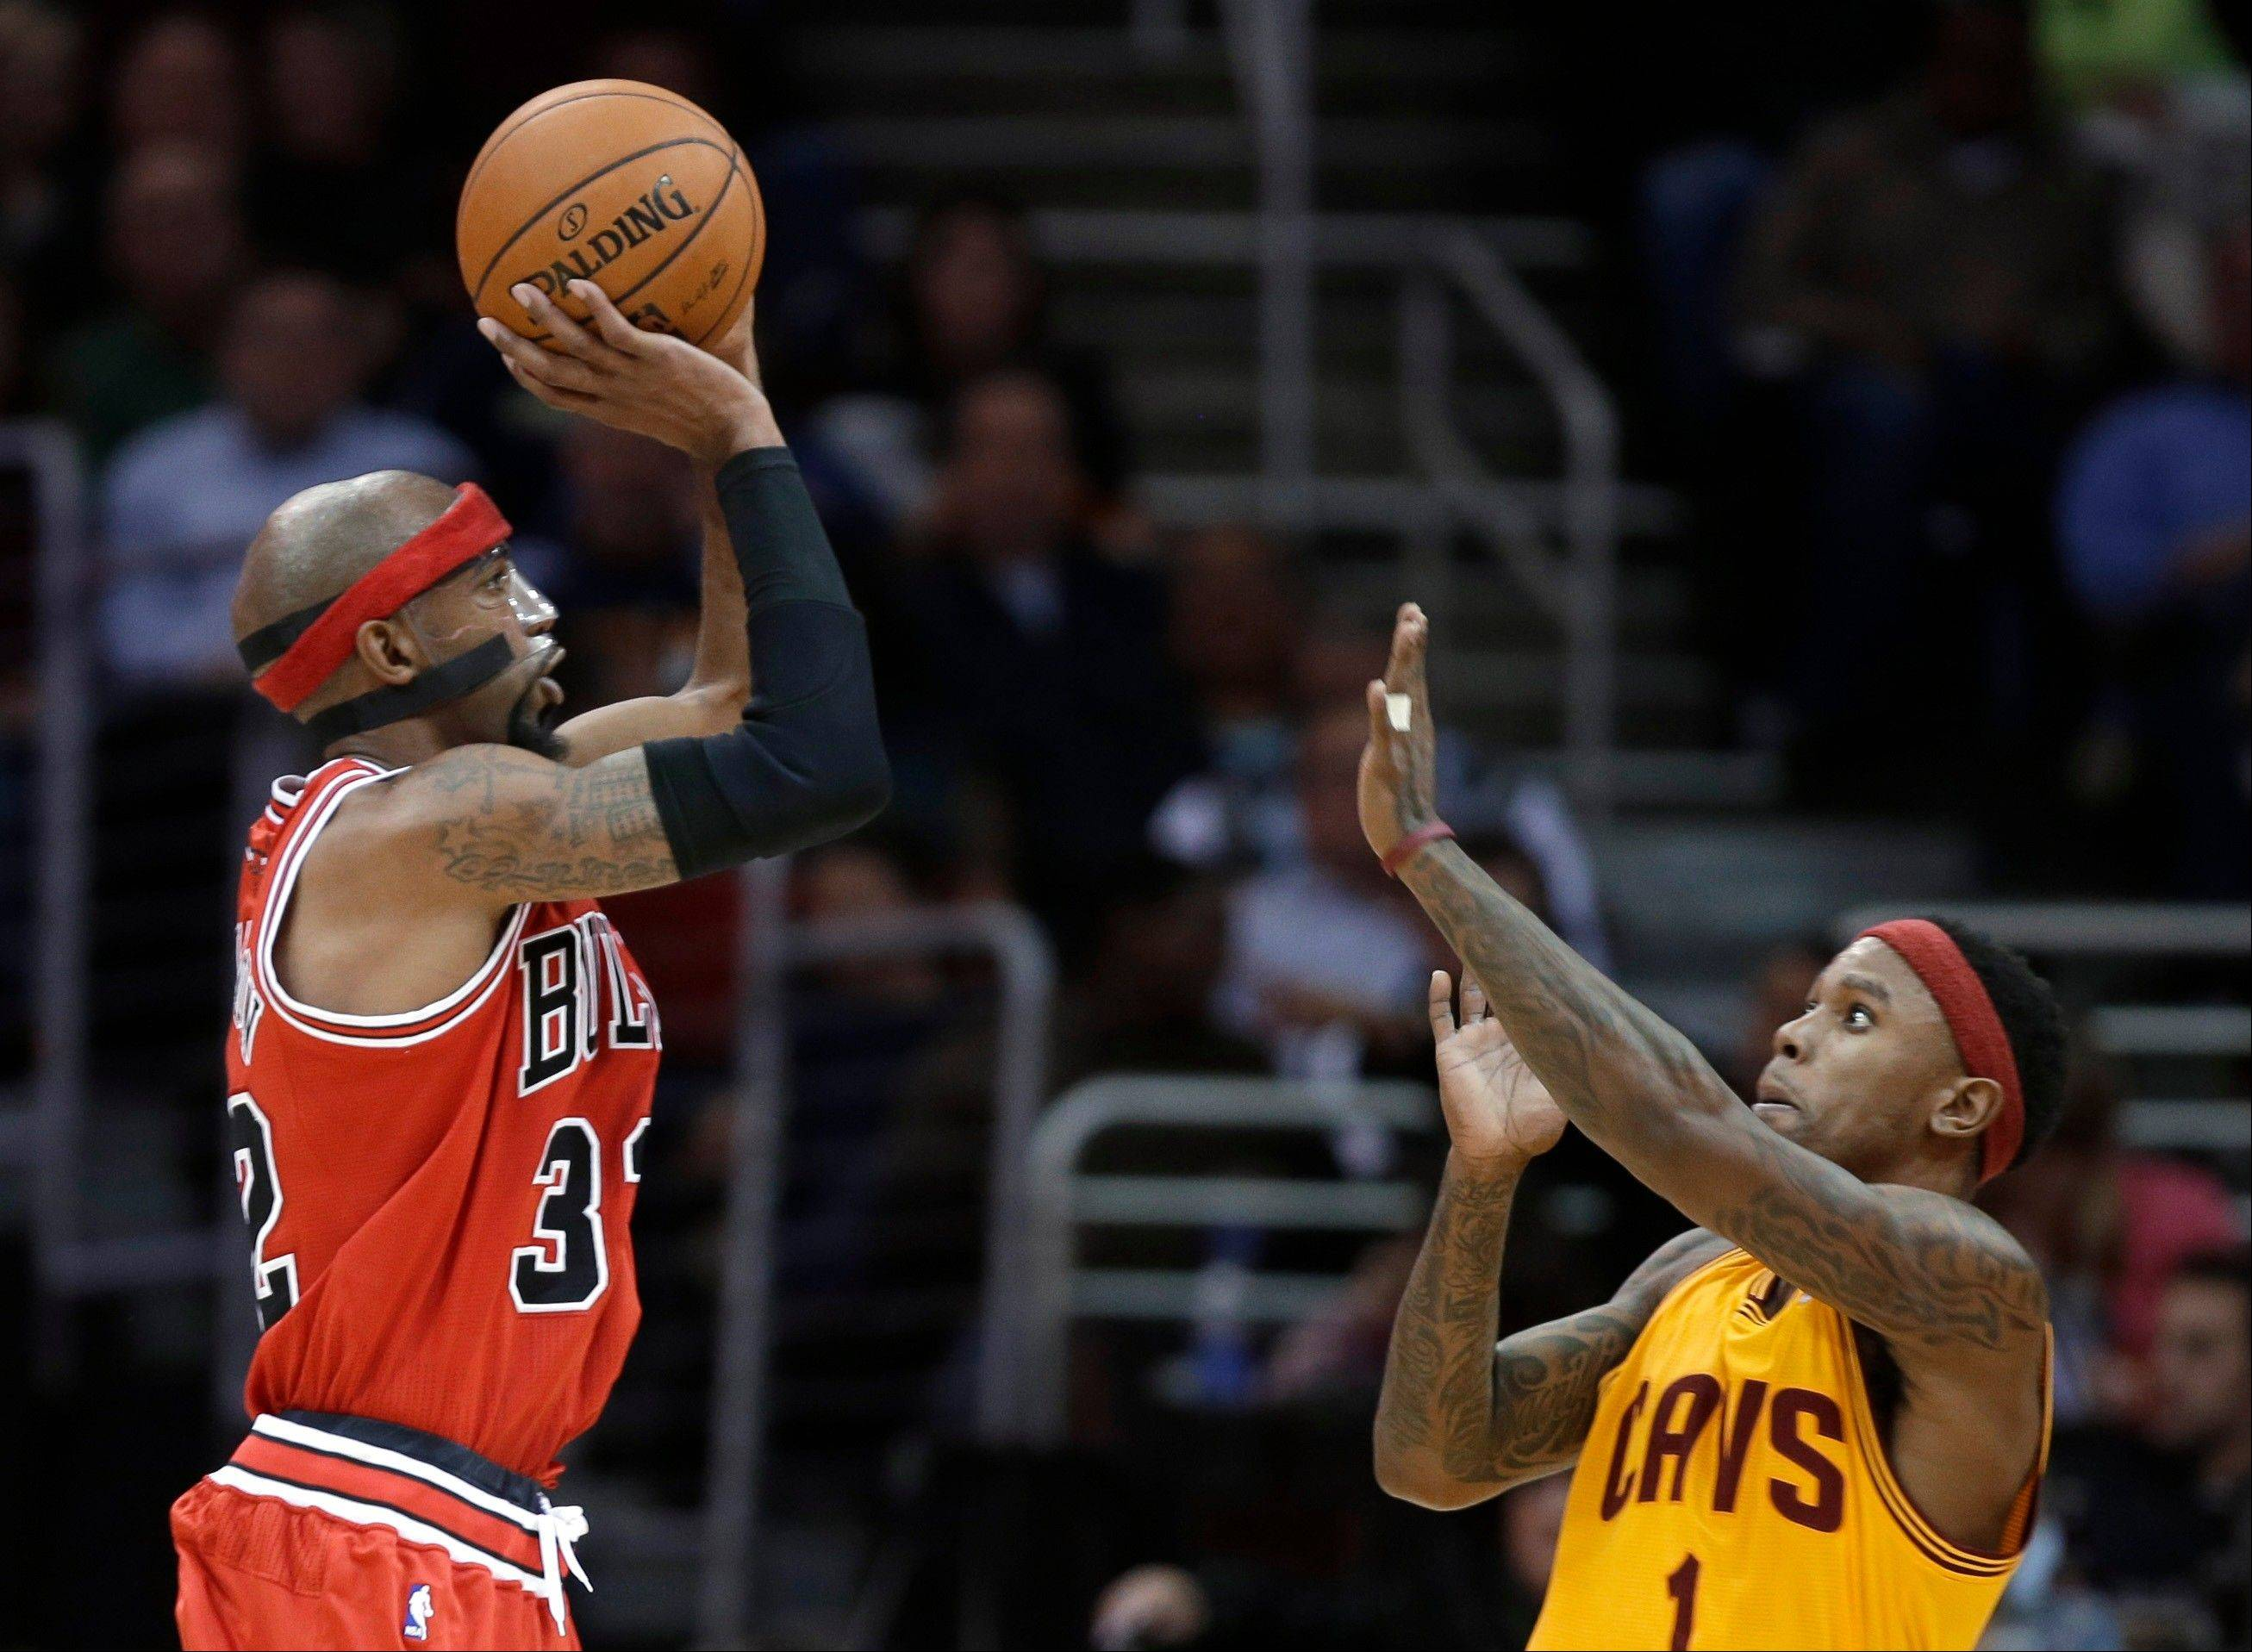 Richard Hamilton shoots over Cleveland�s Daniel Gibson during the third quarter of the Bulls� victory Friday night in Cleveland.